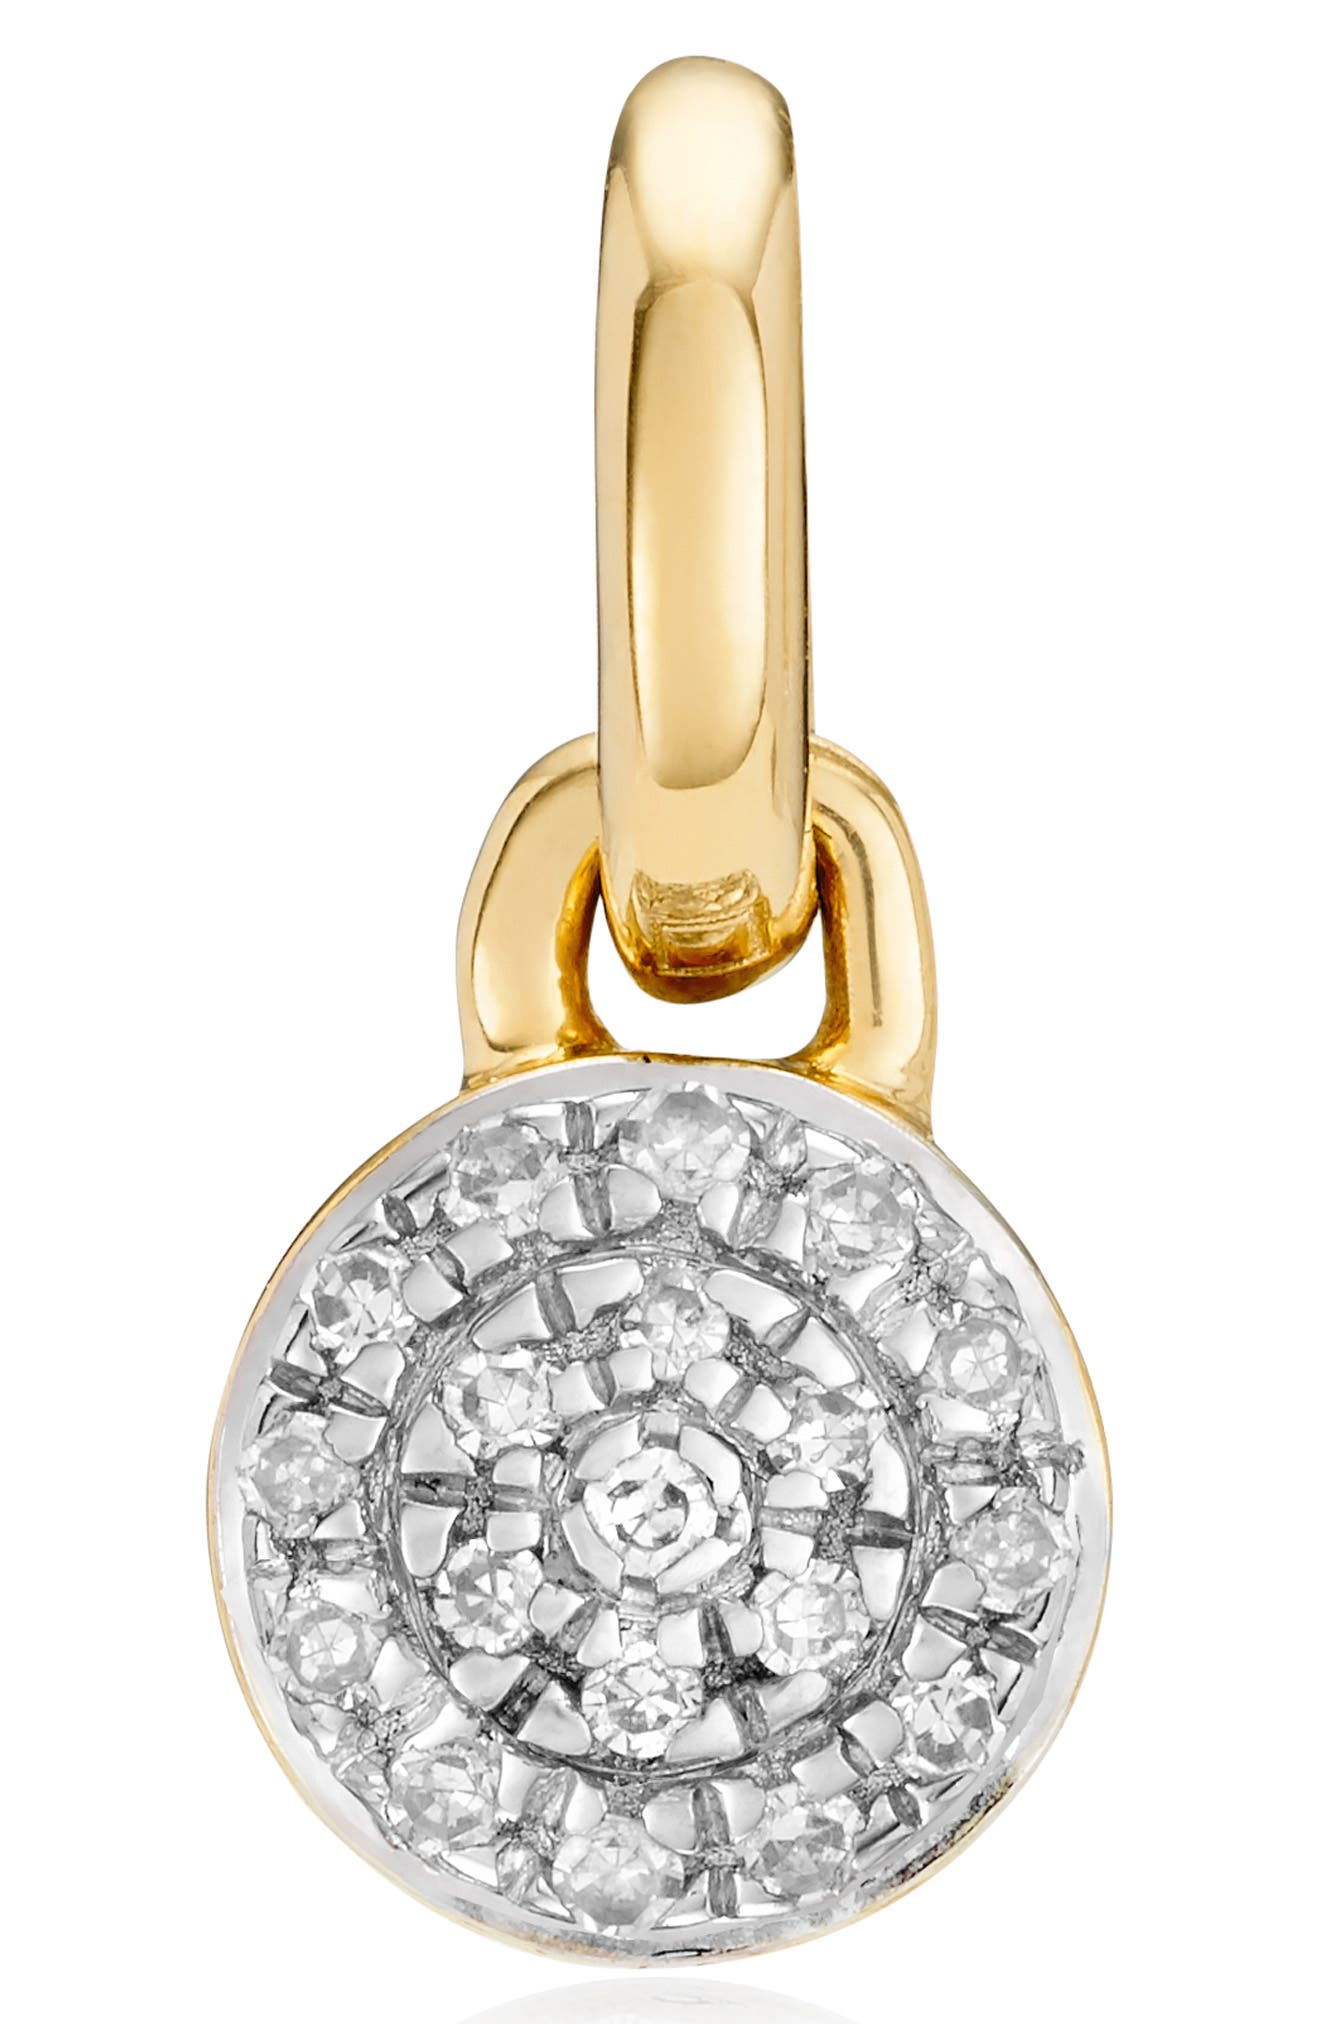 Designed to add to your chosen Monica Vinader chain, sold separately, this lovely and delicate round pendant sparkles bright with 19 pave diamonds. Style Name: Monica Vinader Fiji Mini Diamond Button Pendant Charm. Style Number: 5692425. Available in stores.